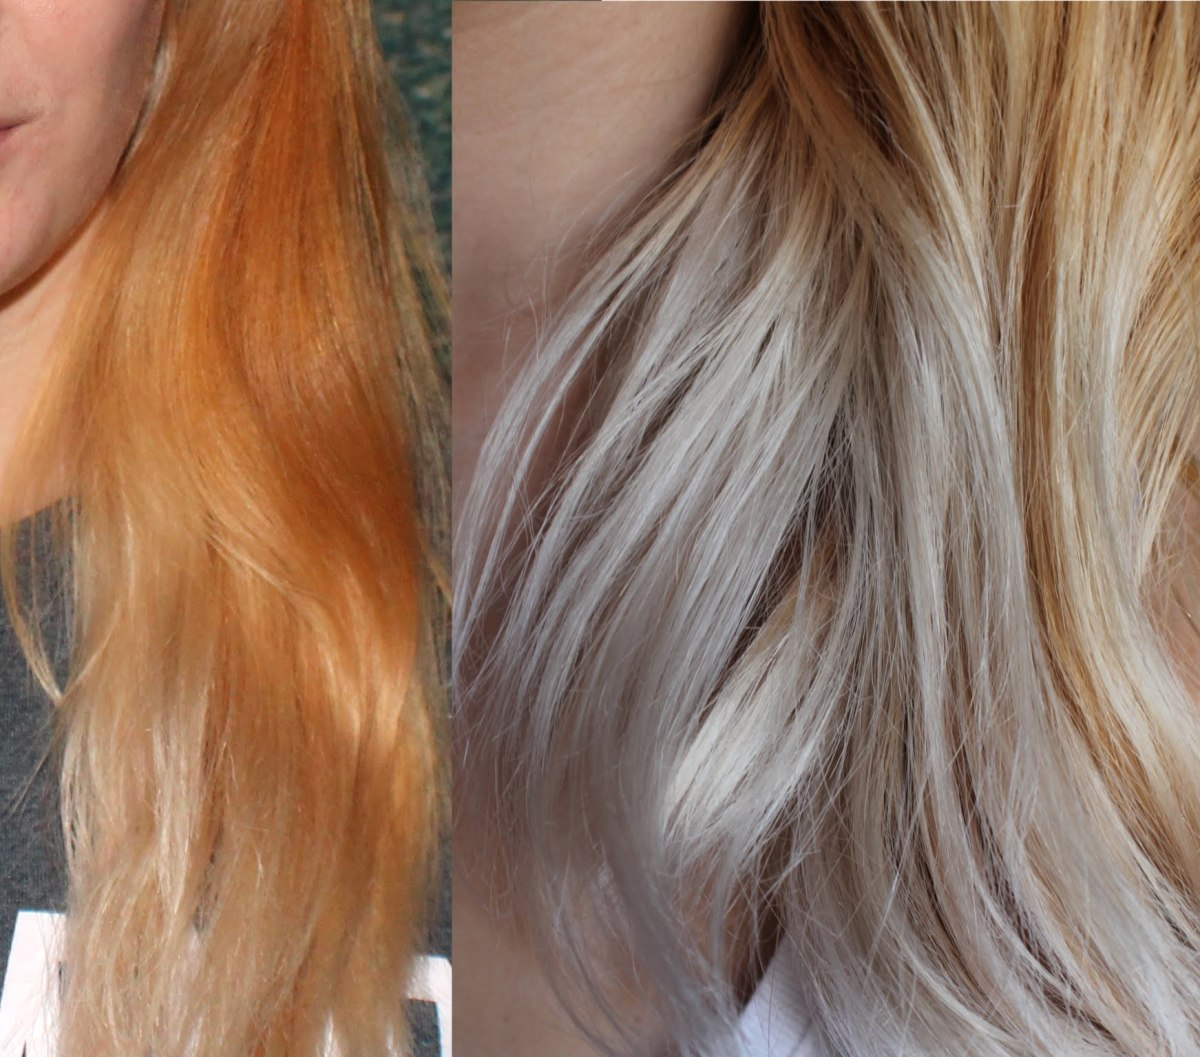 DIY Hair: How to Use Wella Color Charm Toner